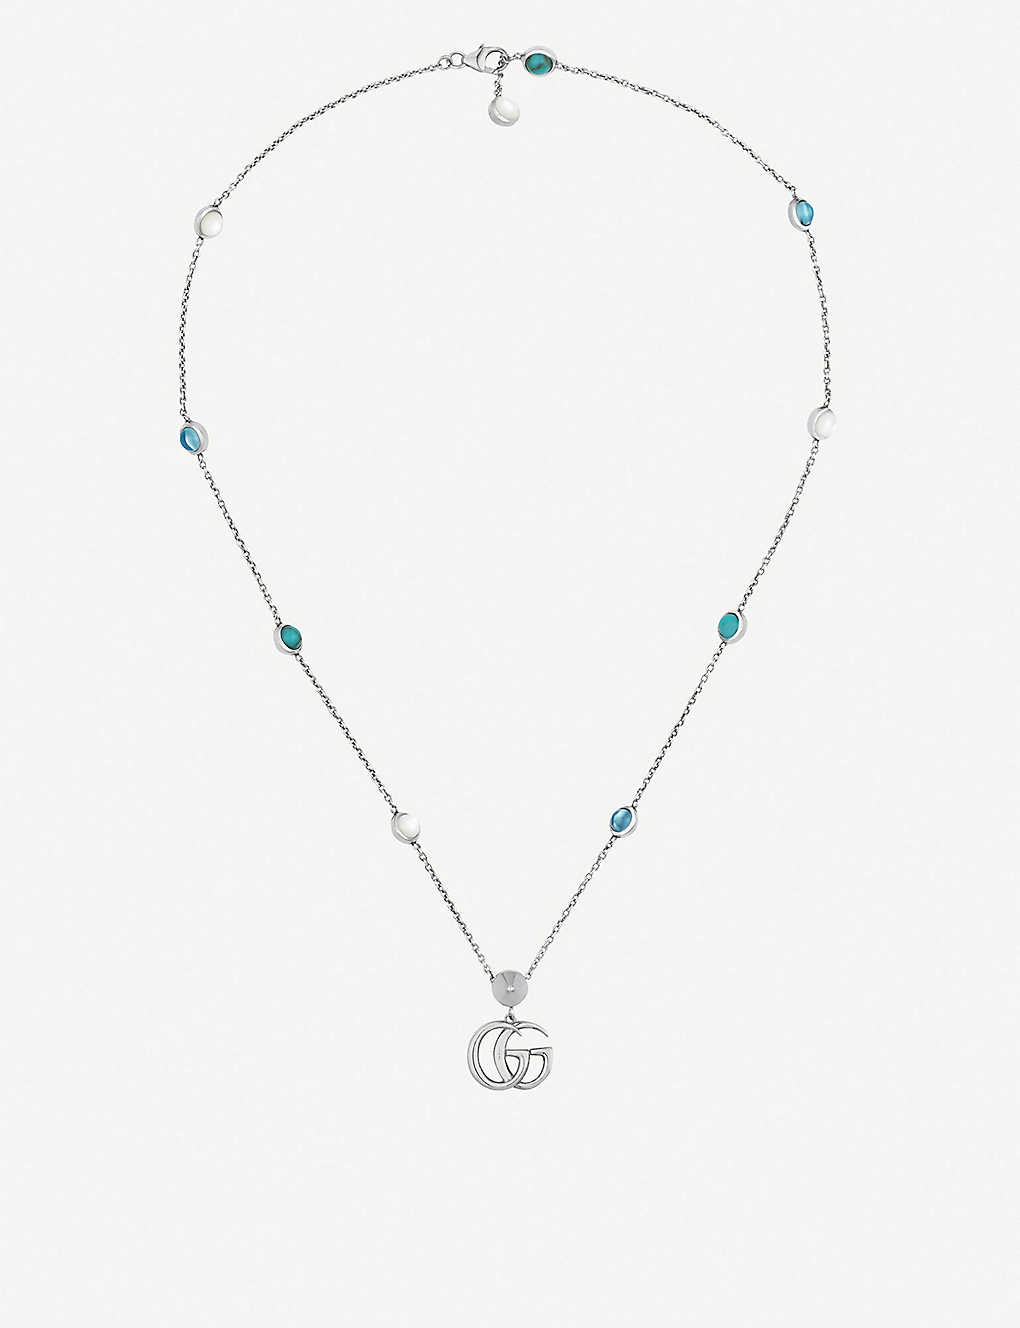 4f76899b8 GUCCI - GG Marmont sterling silver and mother-of-pearl necklace ...